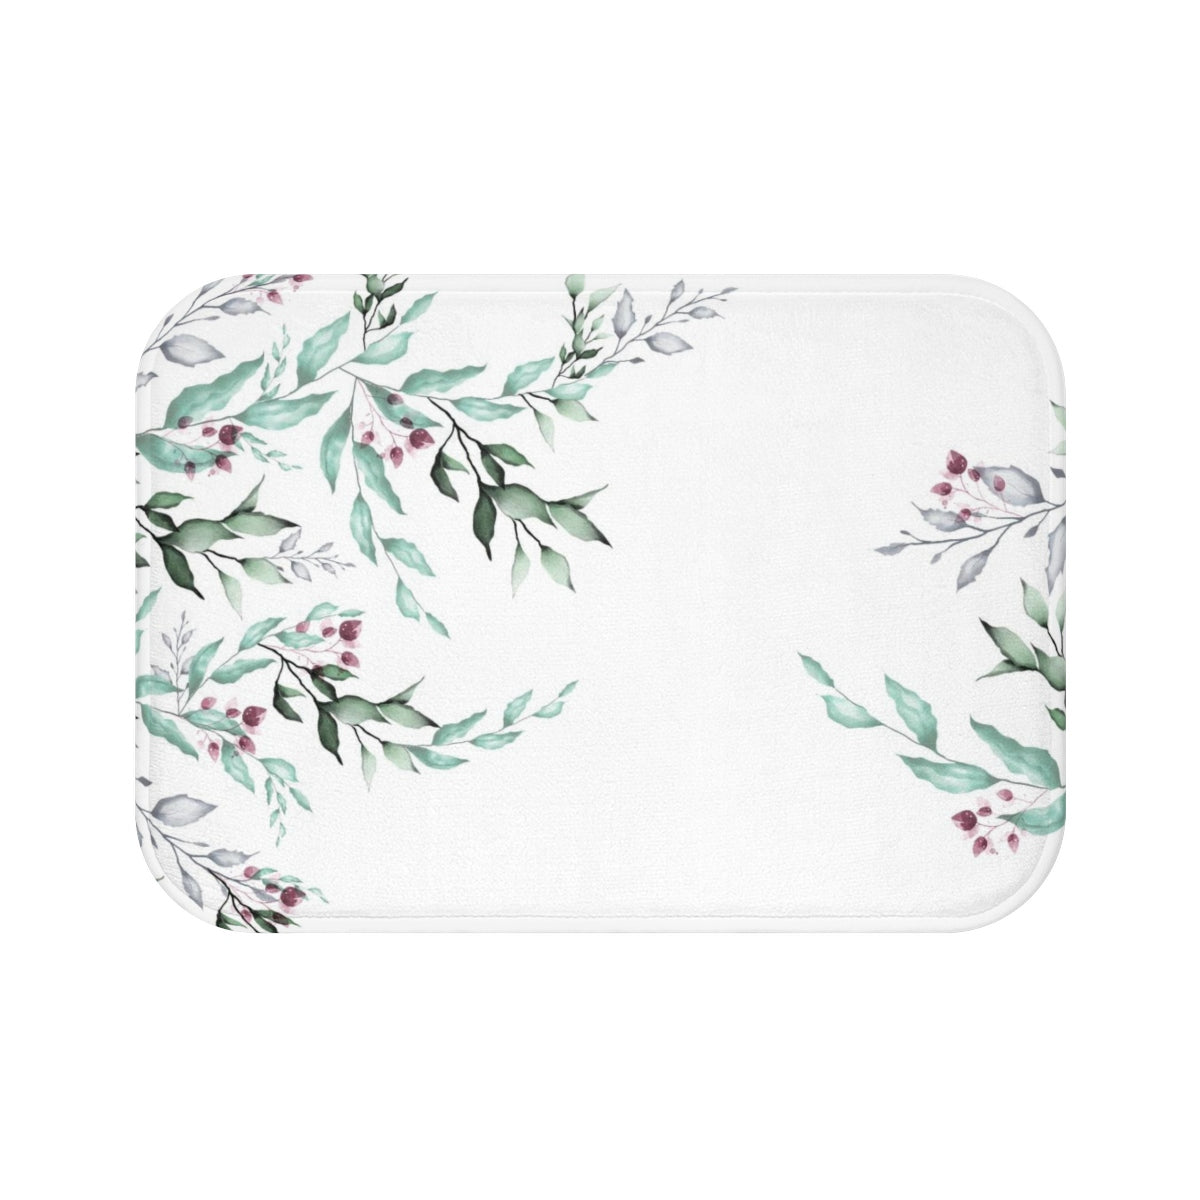 Leves Floral Bath Mat - Liz Kapiloto Art & Design